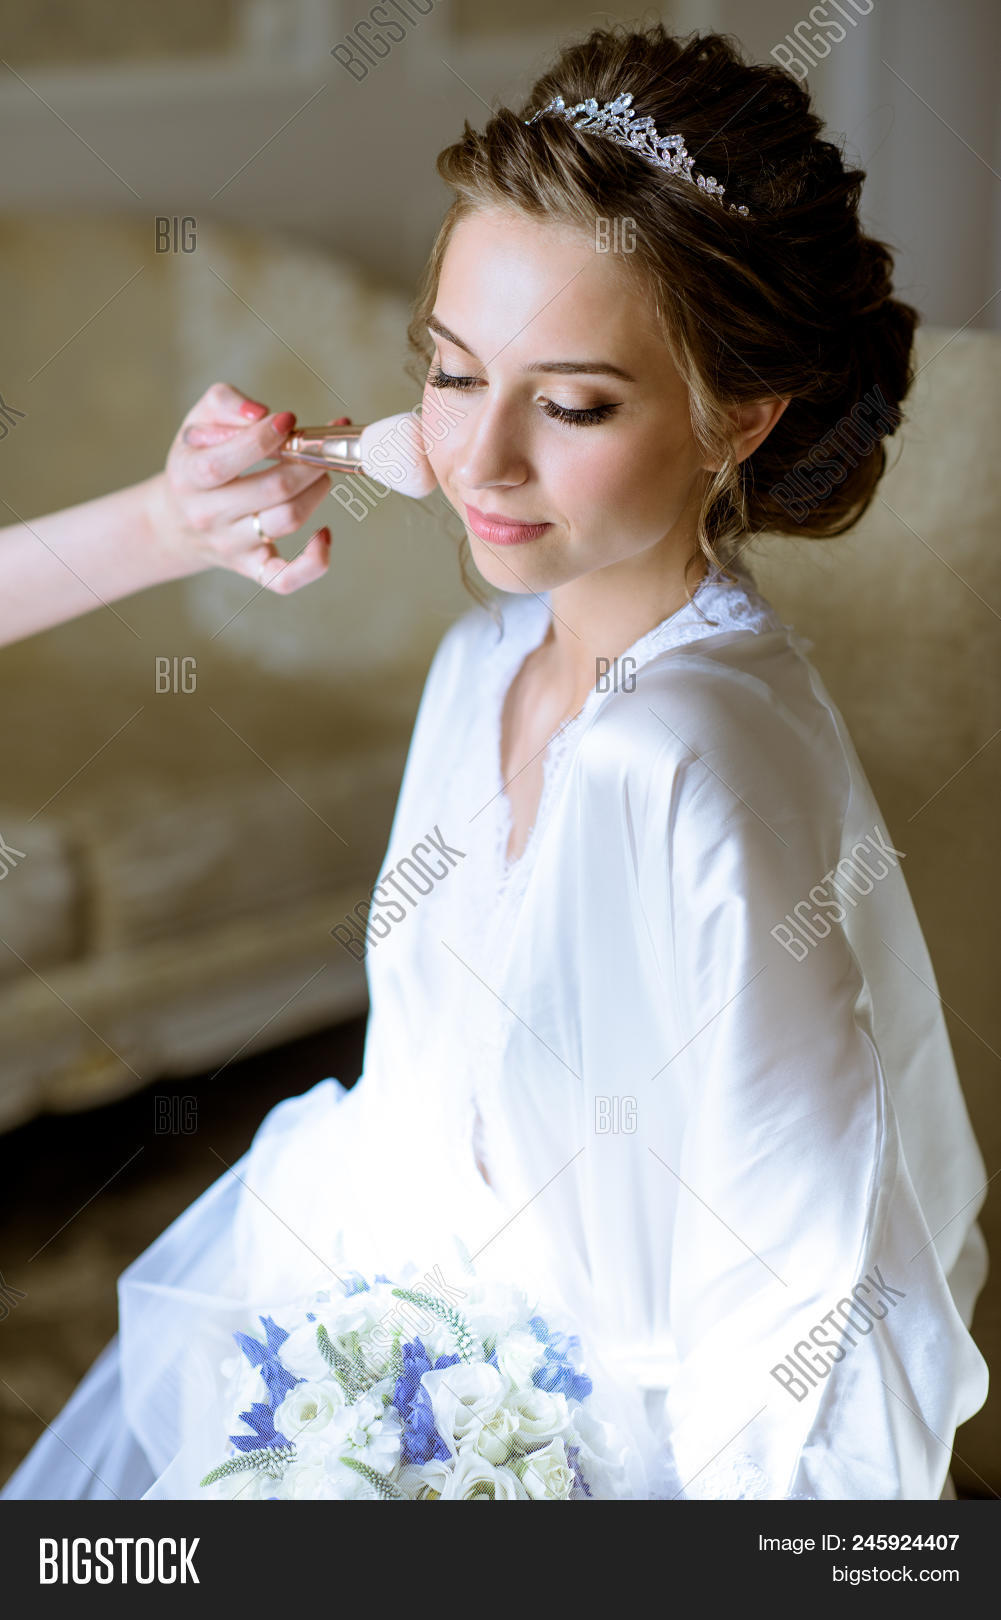 Wedding Makeup Artist Image Photo Free Trial Bigstock